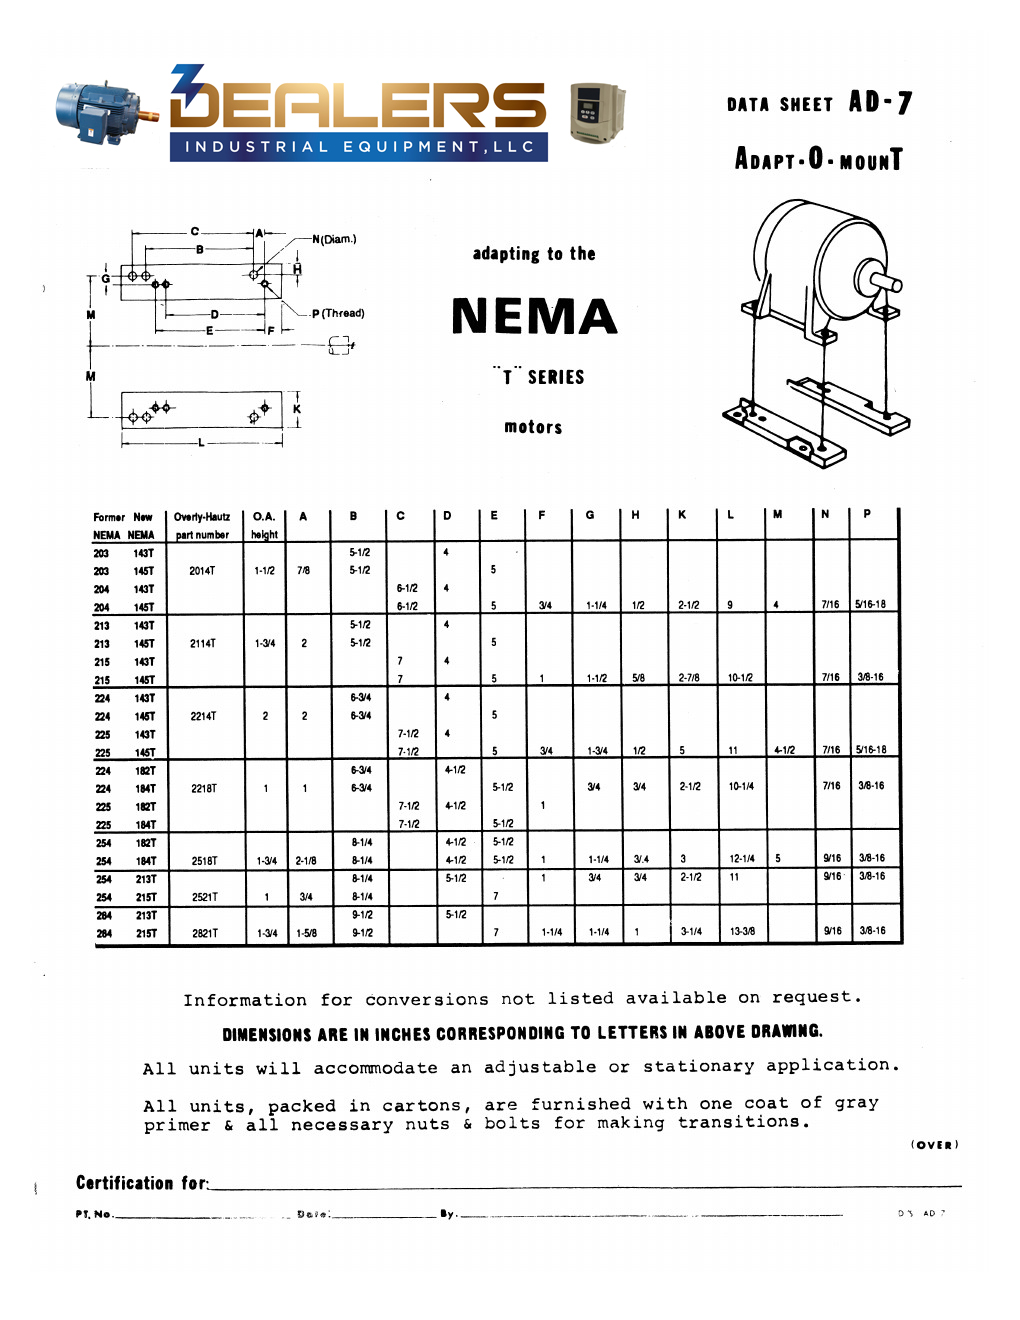 original frame to t frame former nema frame sizes 203 284